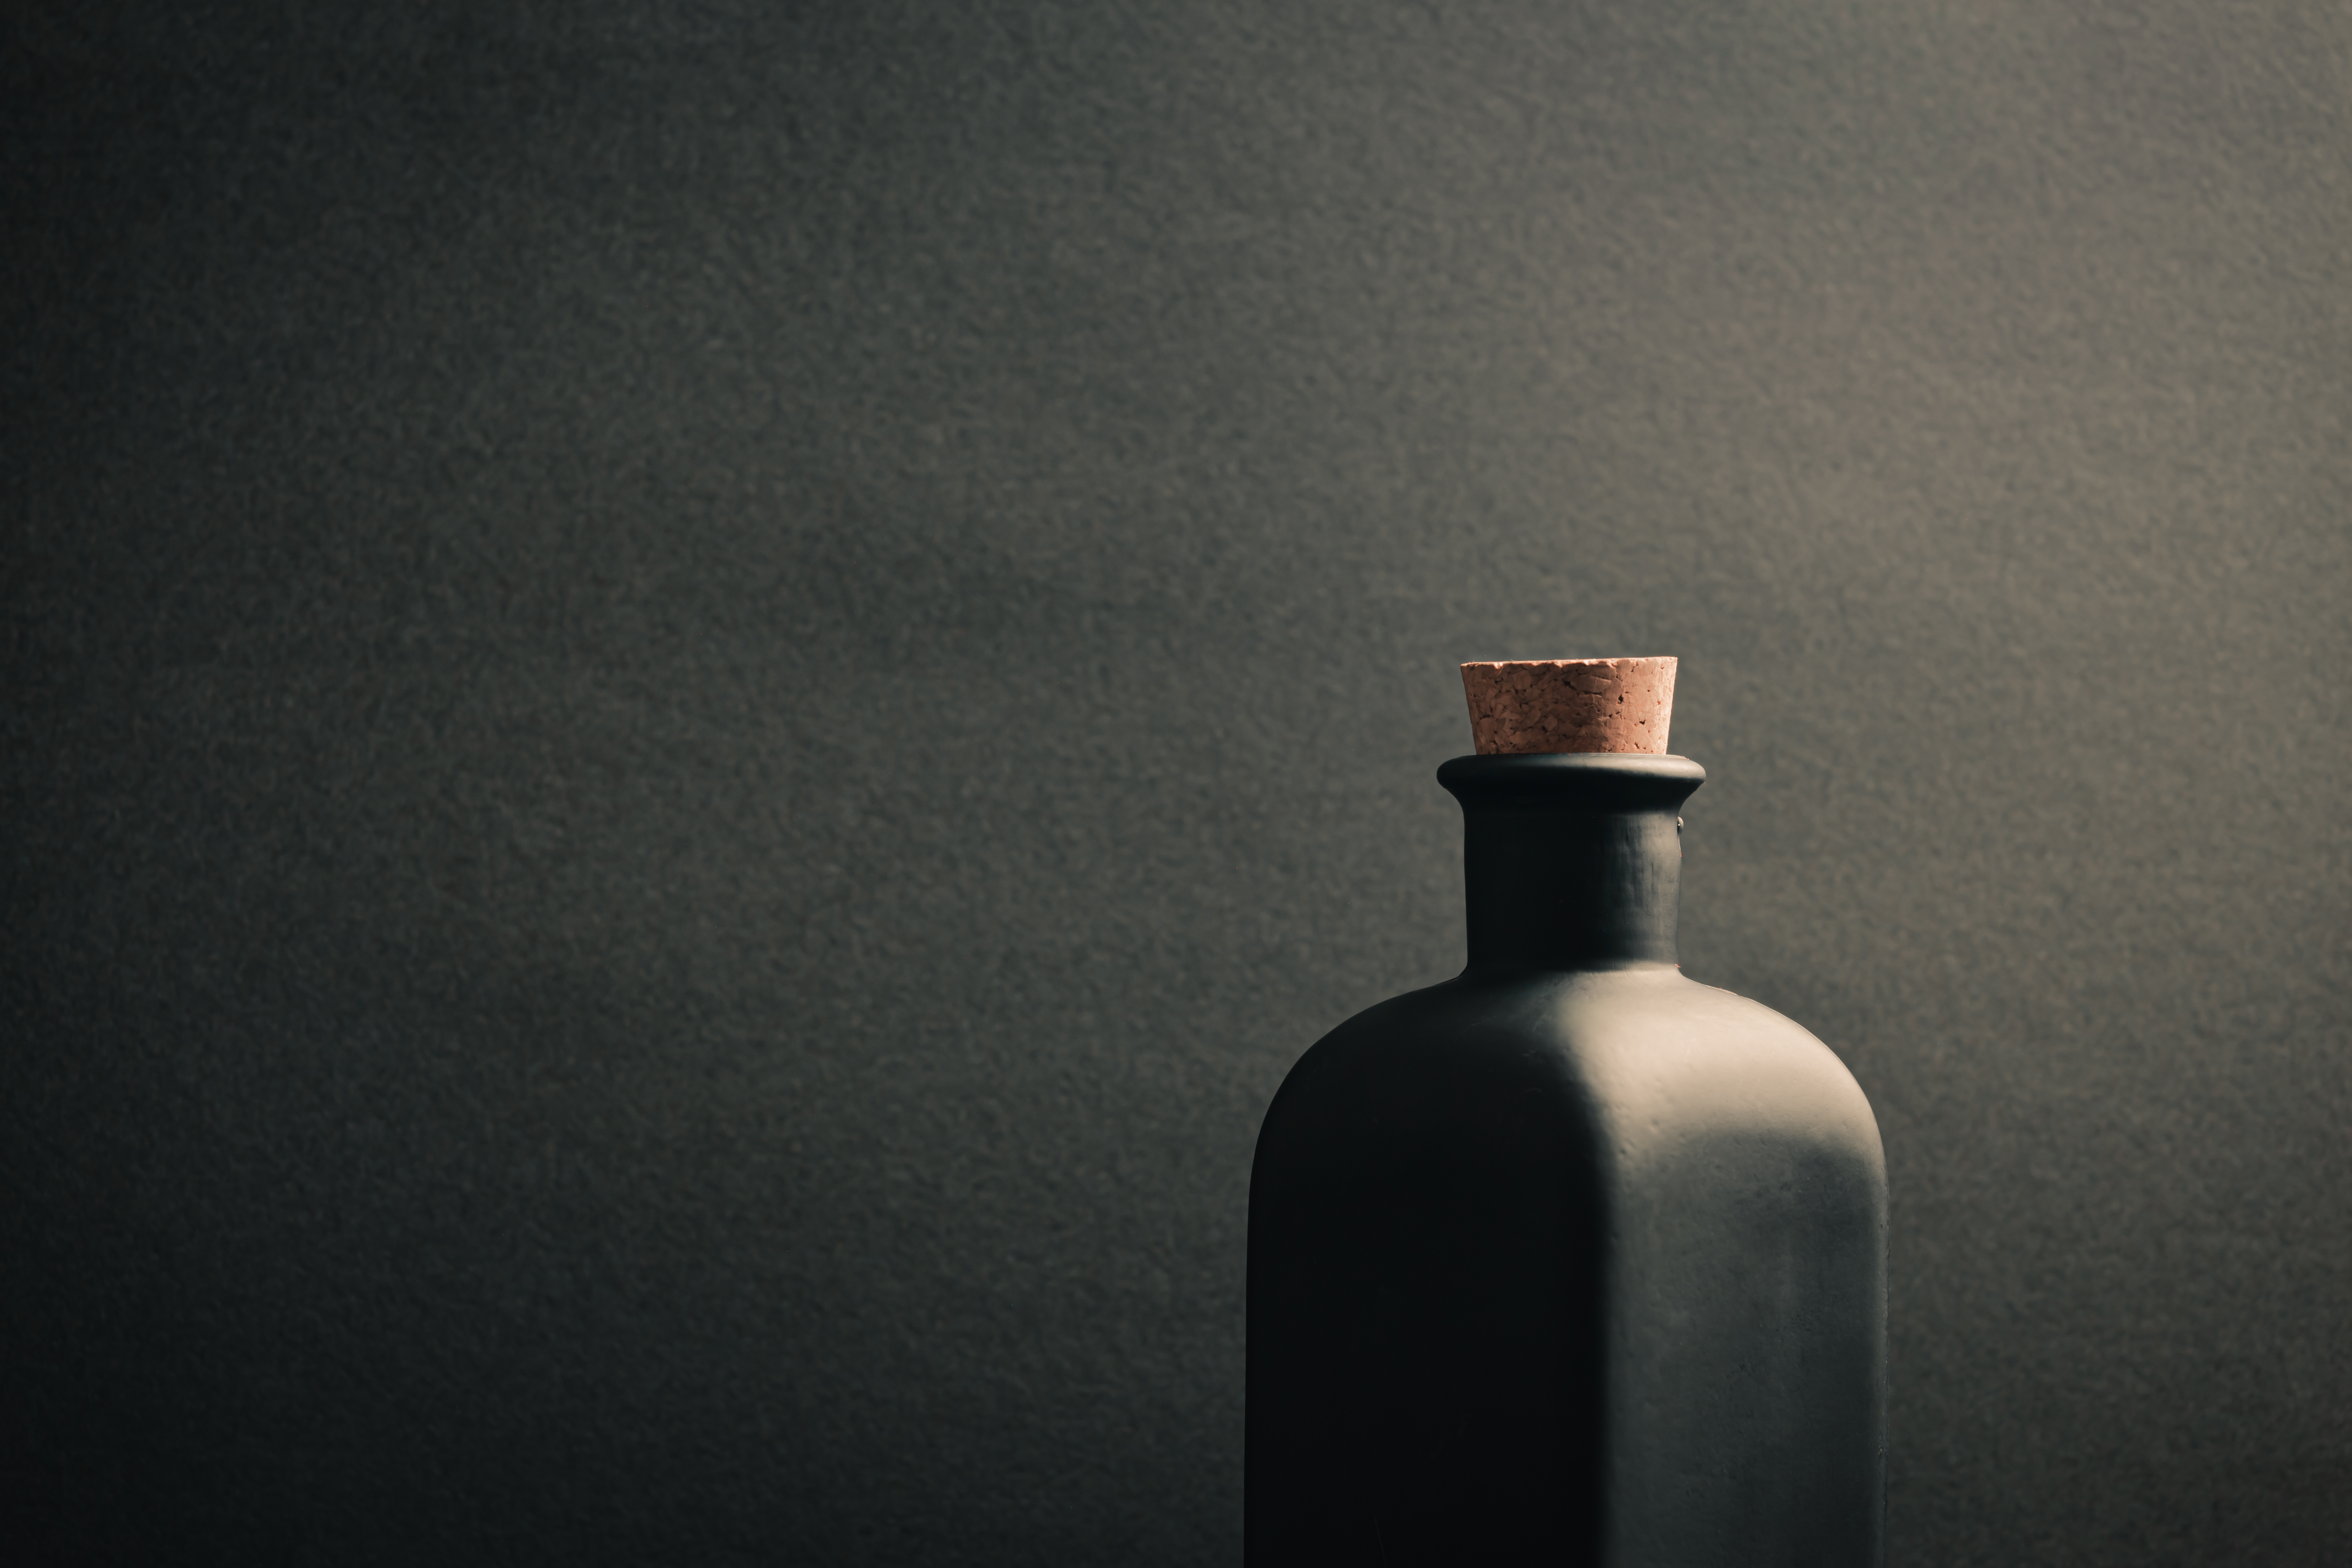 Black ceramic bottle